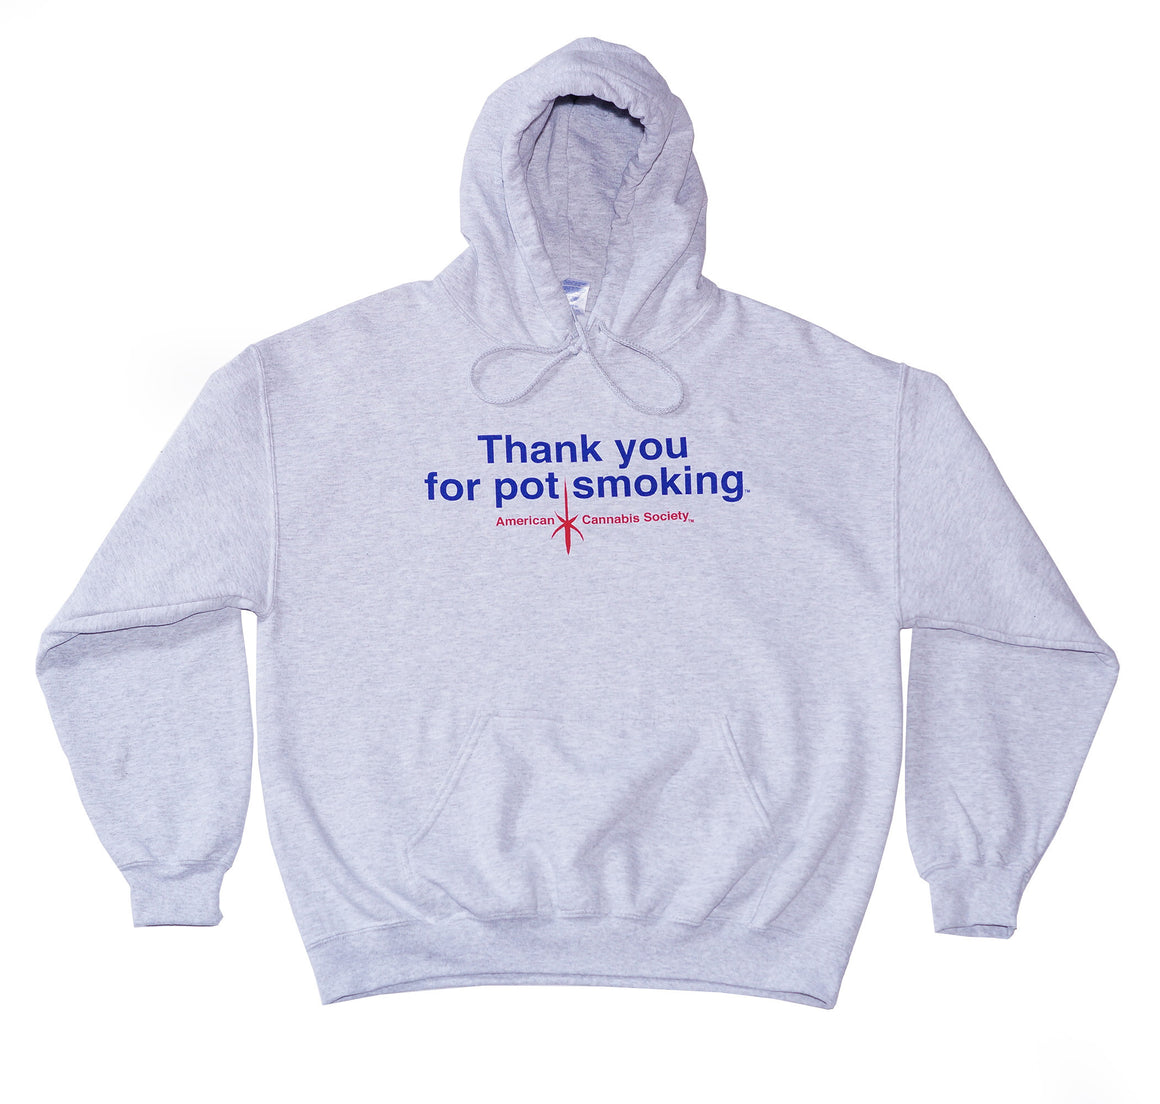 Thank You For Pot Smoking® Hoodie Sweatshirt - Ash Grey